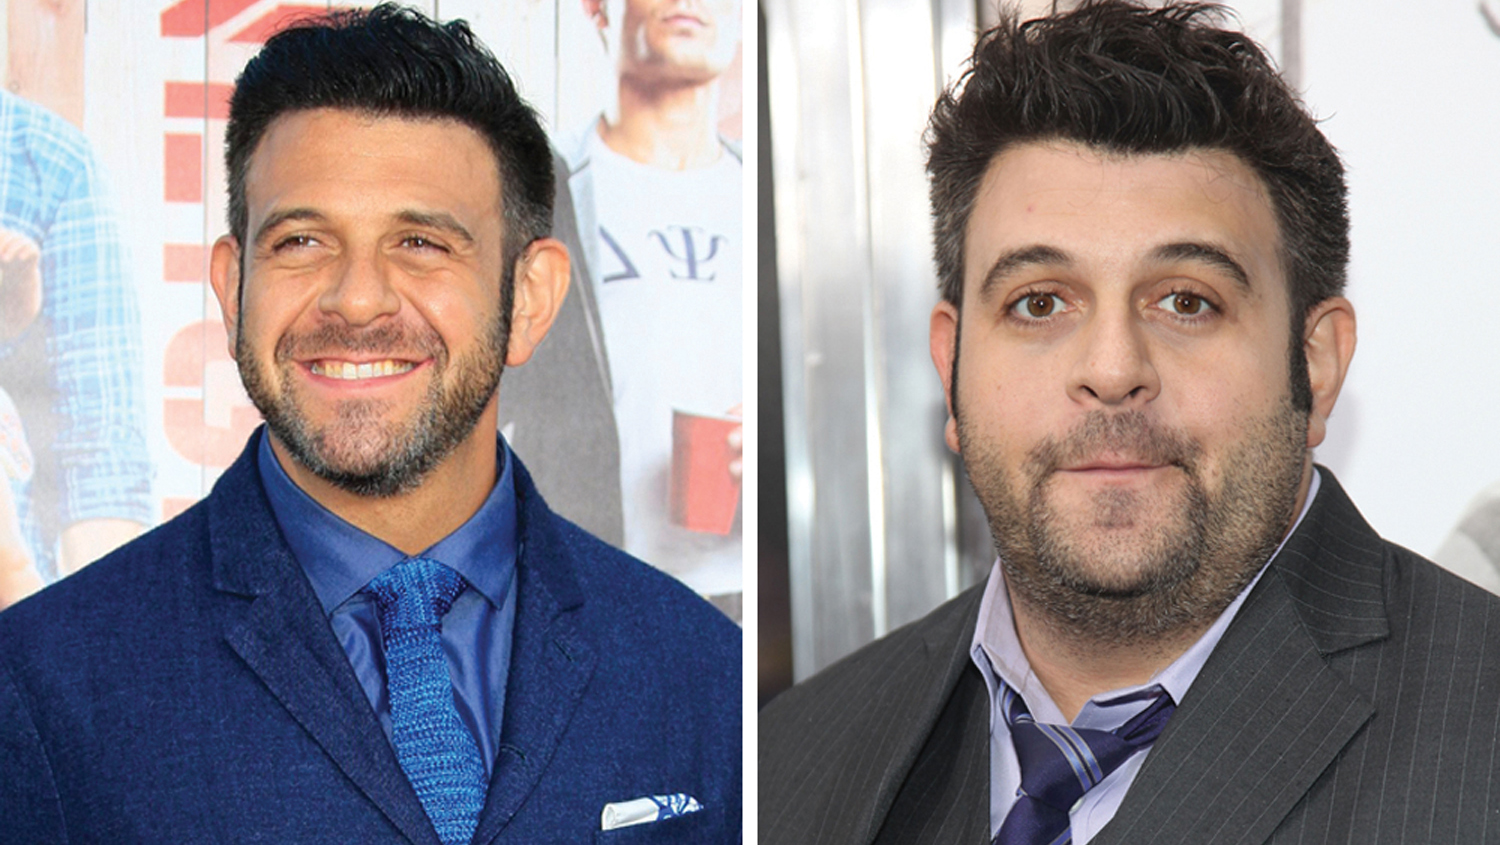 Image: Adam Richman